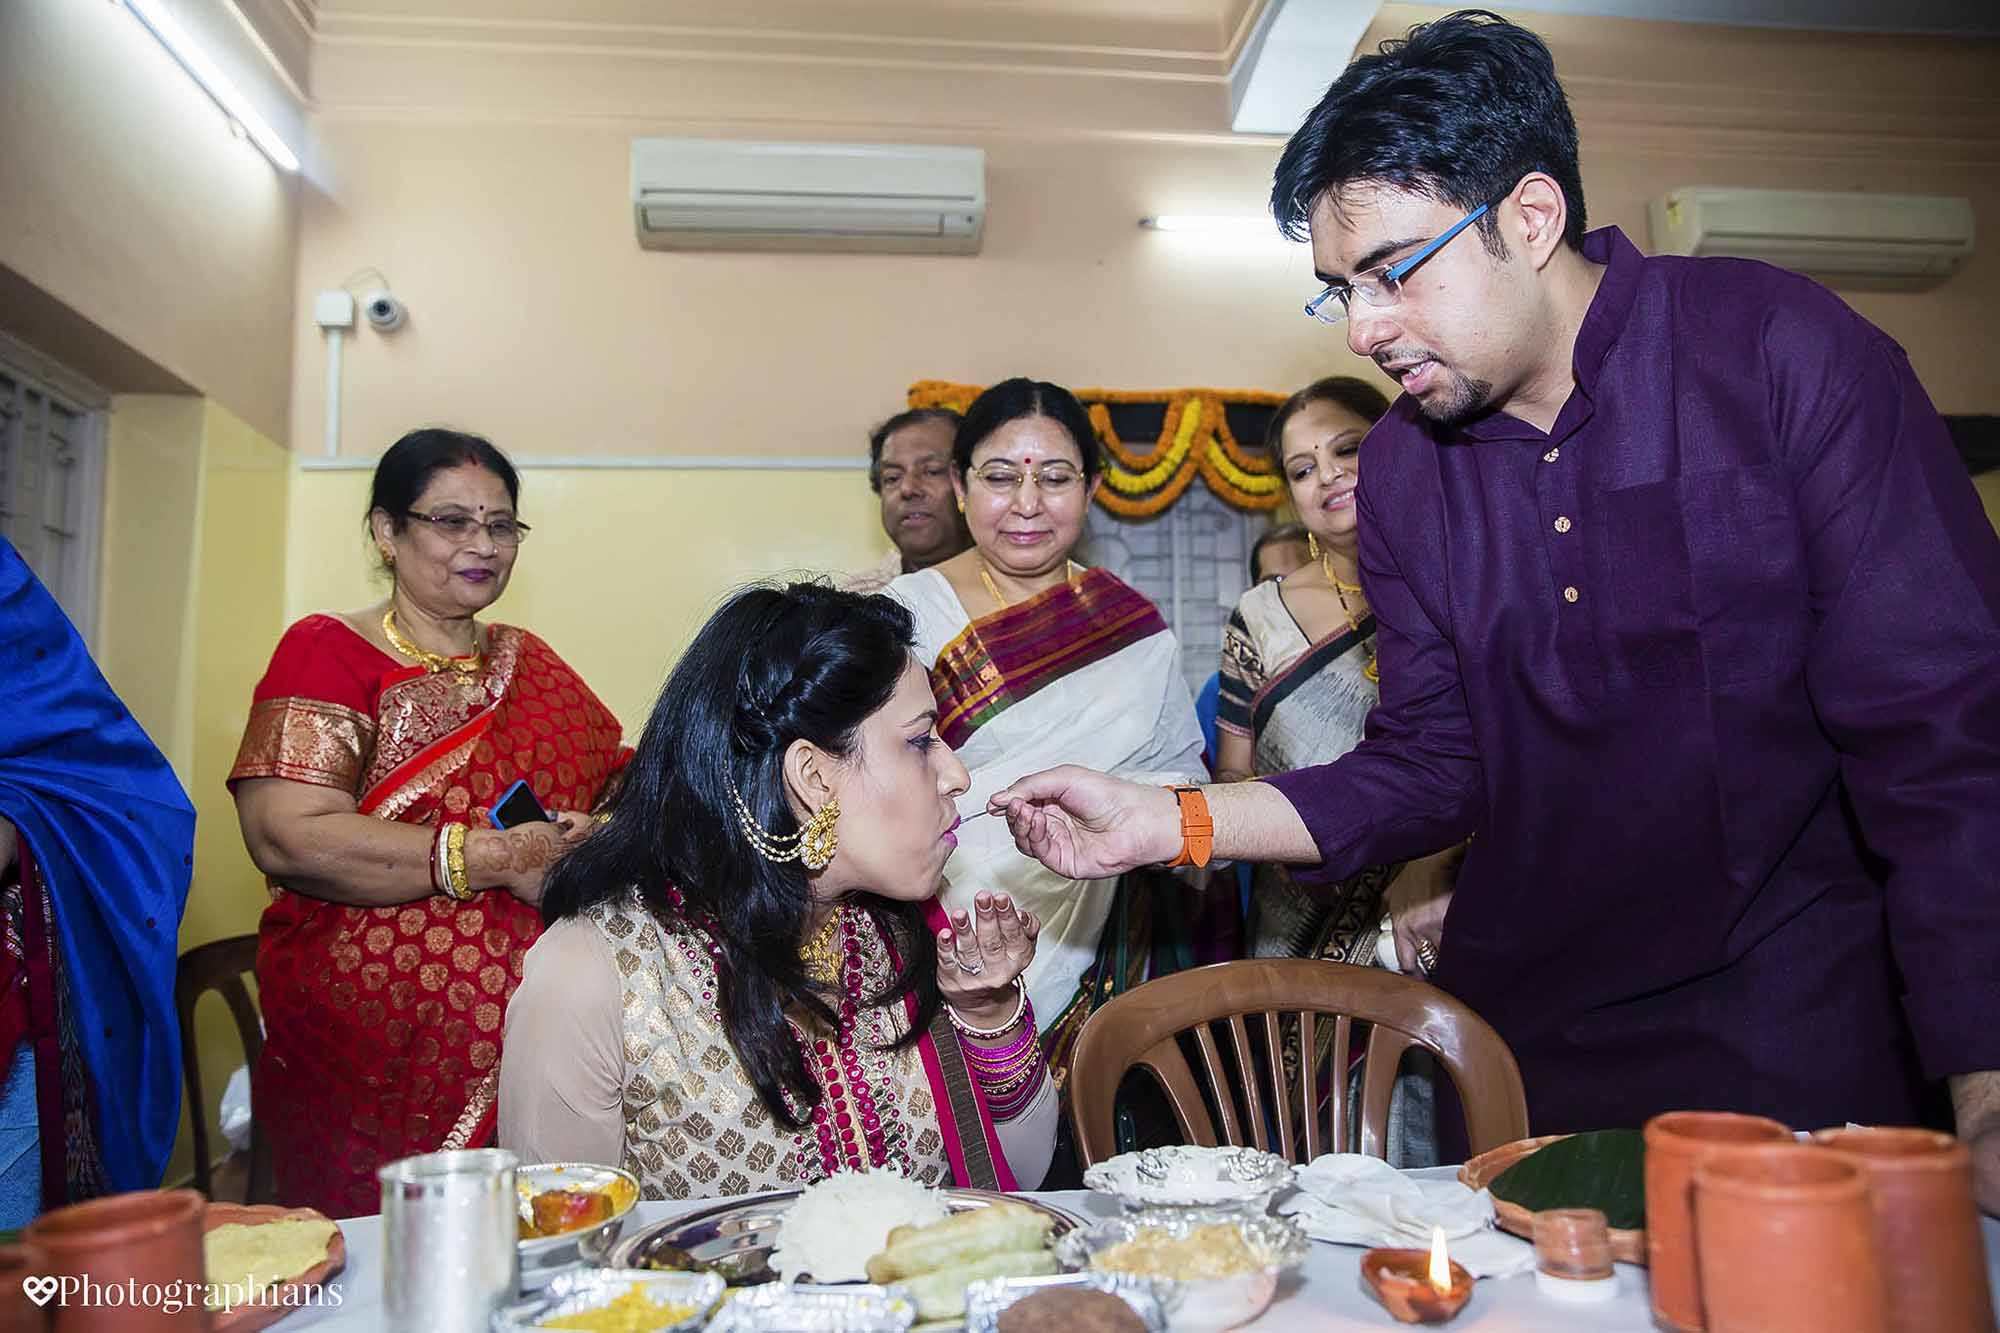 Bengali_Wedding_Photography_Kolkata_Photographians_069